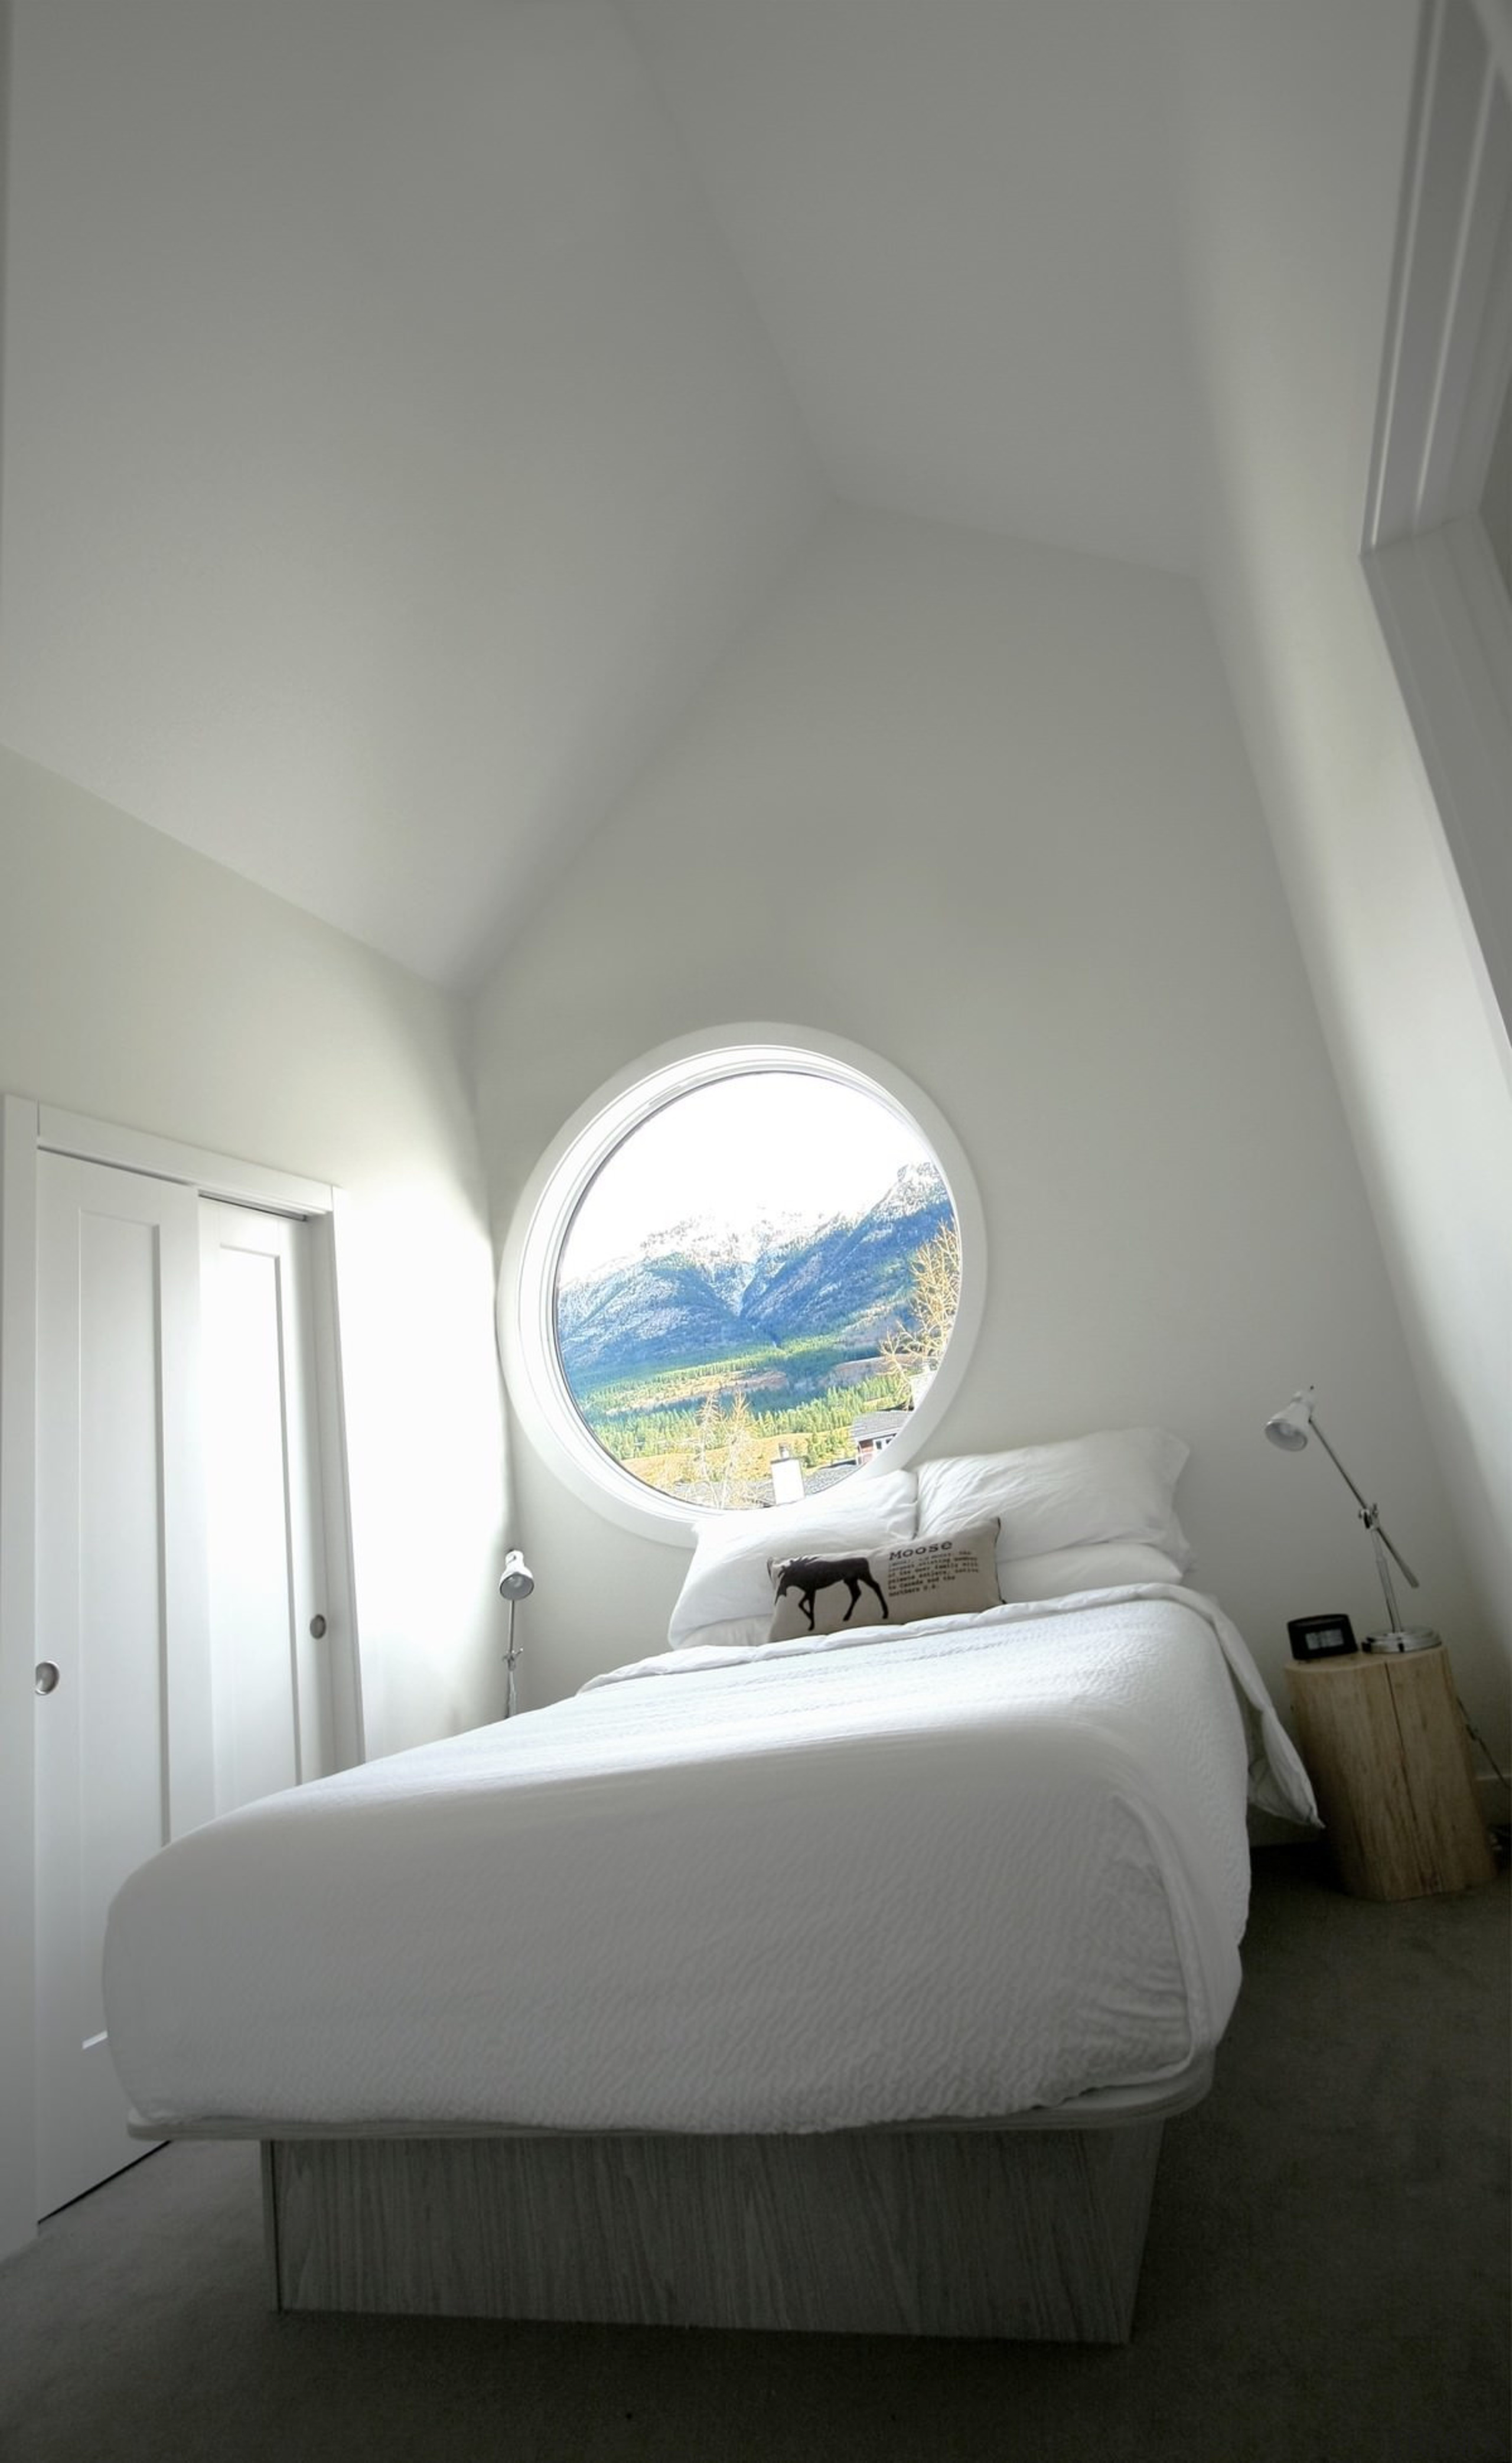 The circular window frames the mountain landscape - architecture, bed, bedroom, ceiling, daylighting, furniture, home, house, interior design, light fixture, lighting, product design, room, wall, window, gray